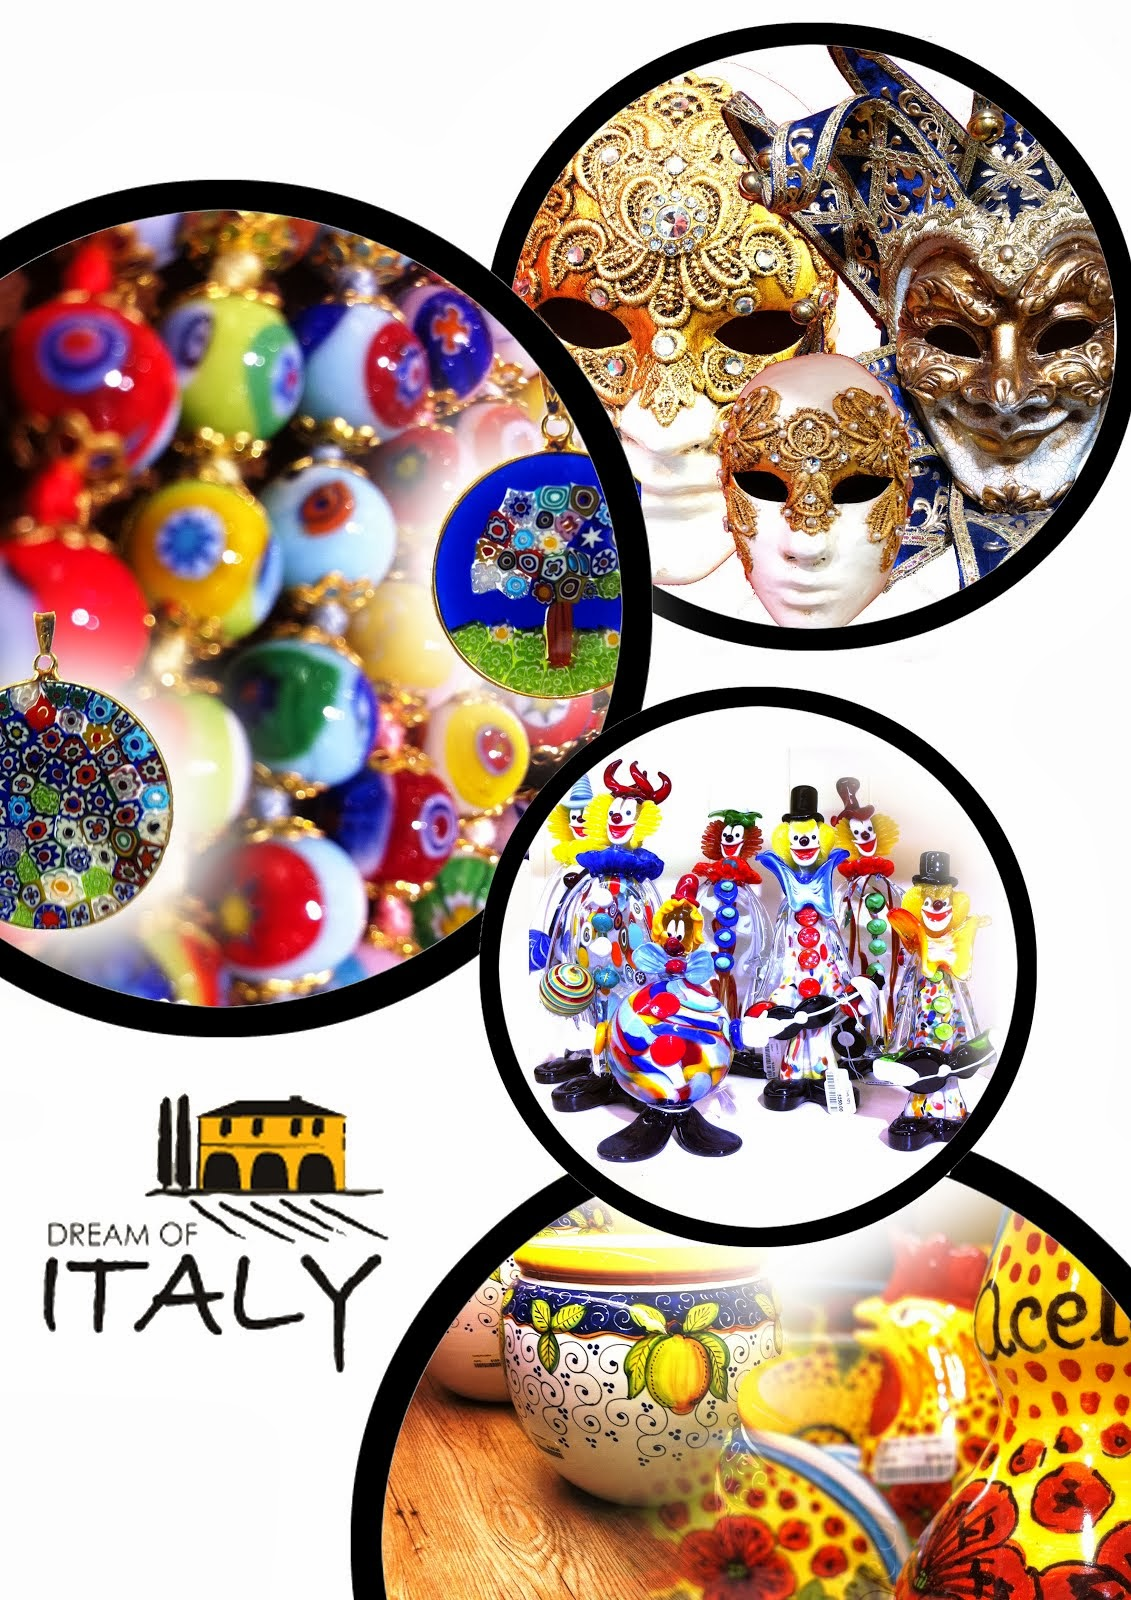 10% off at Dream of Italy